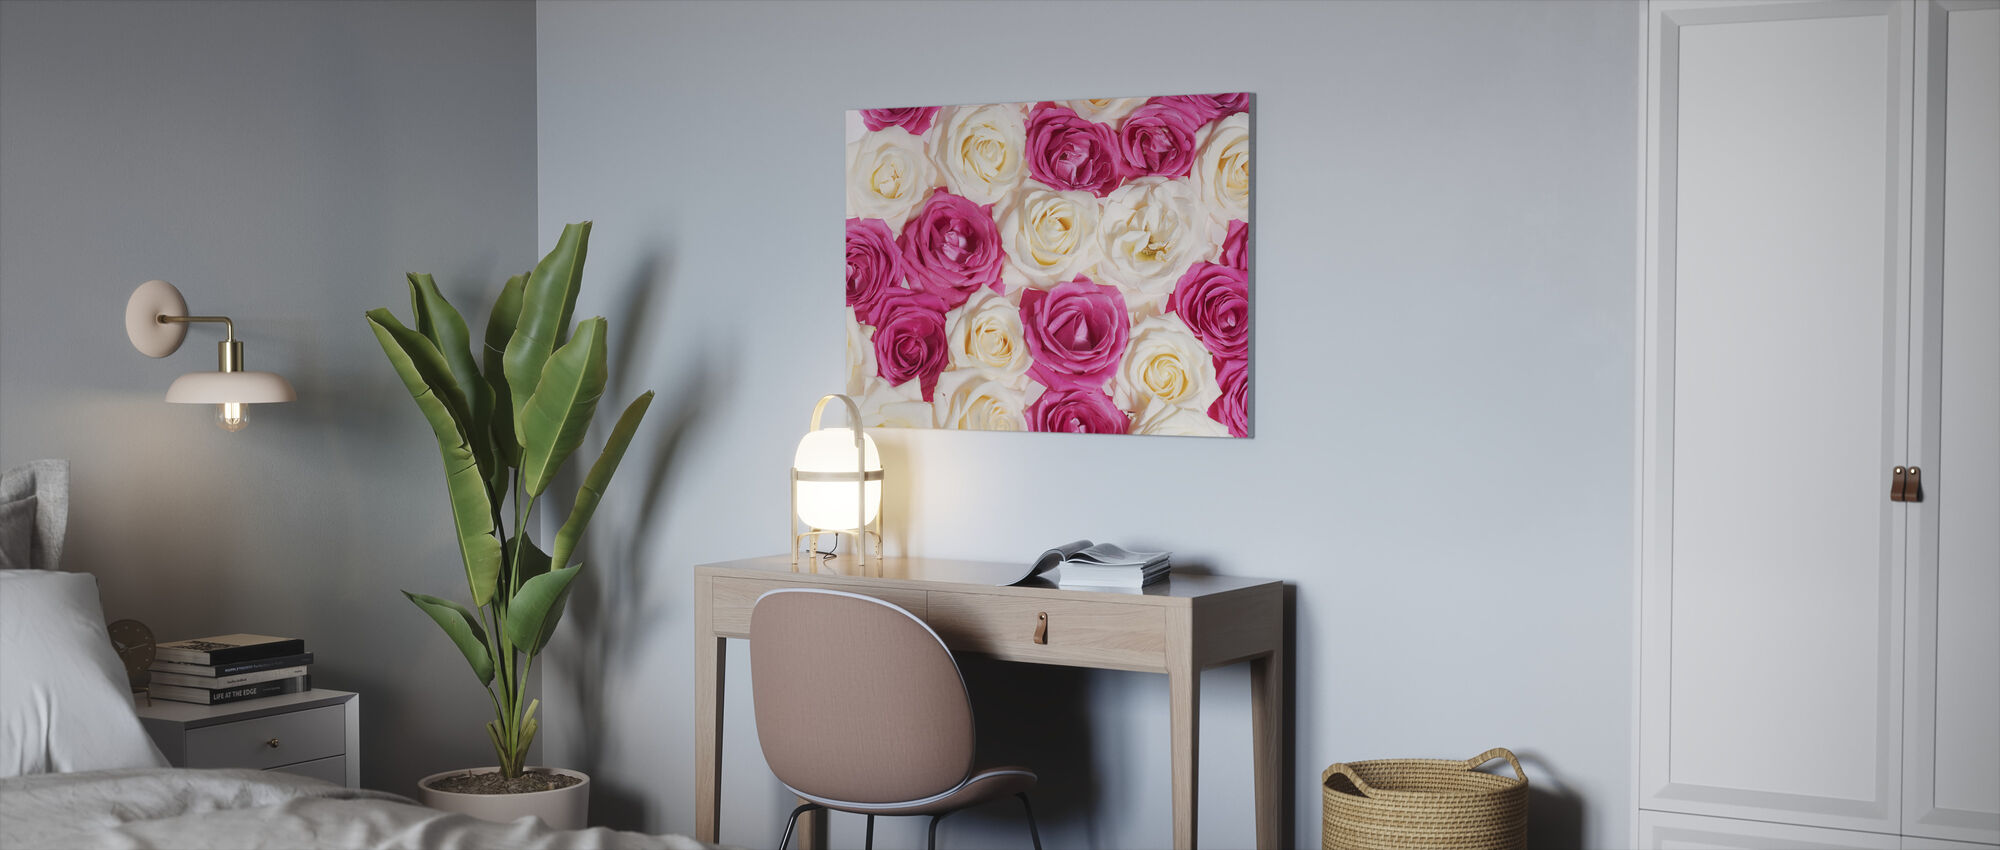 Nice Roses - Canvas print - Office